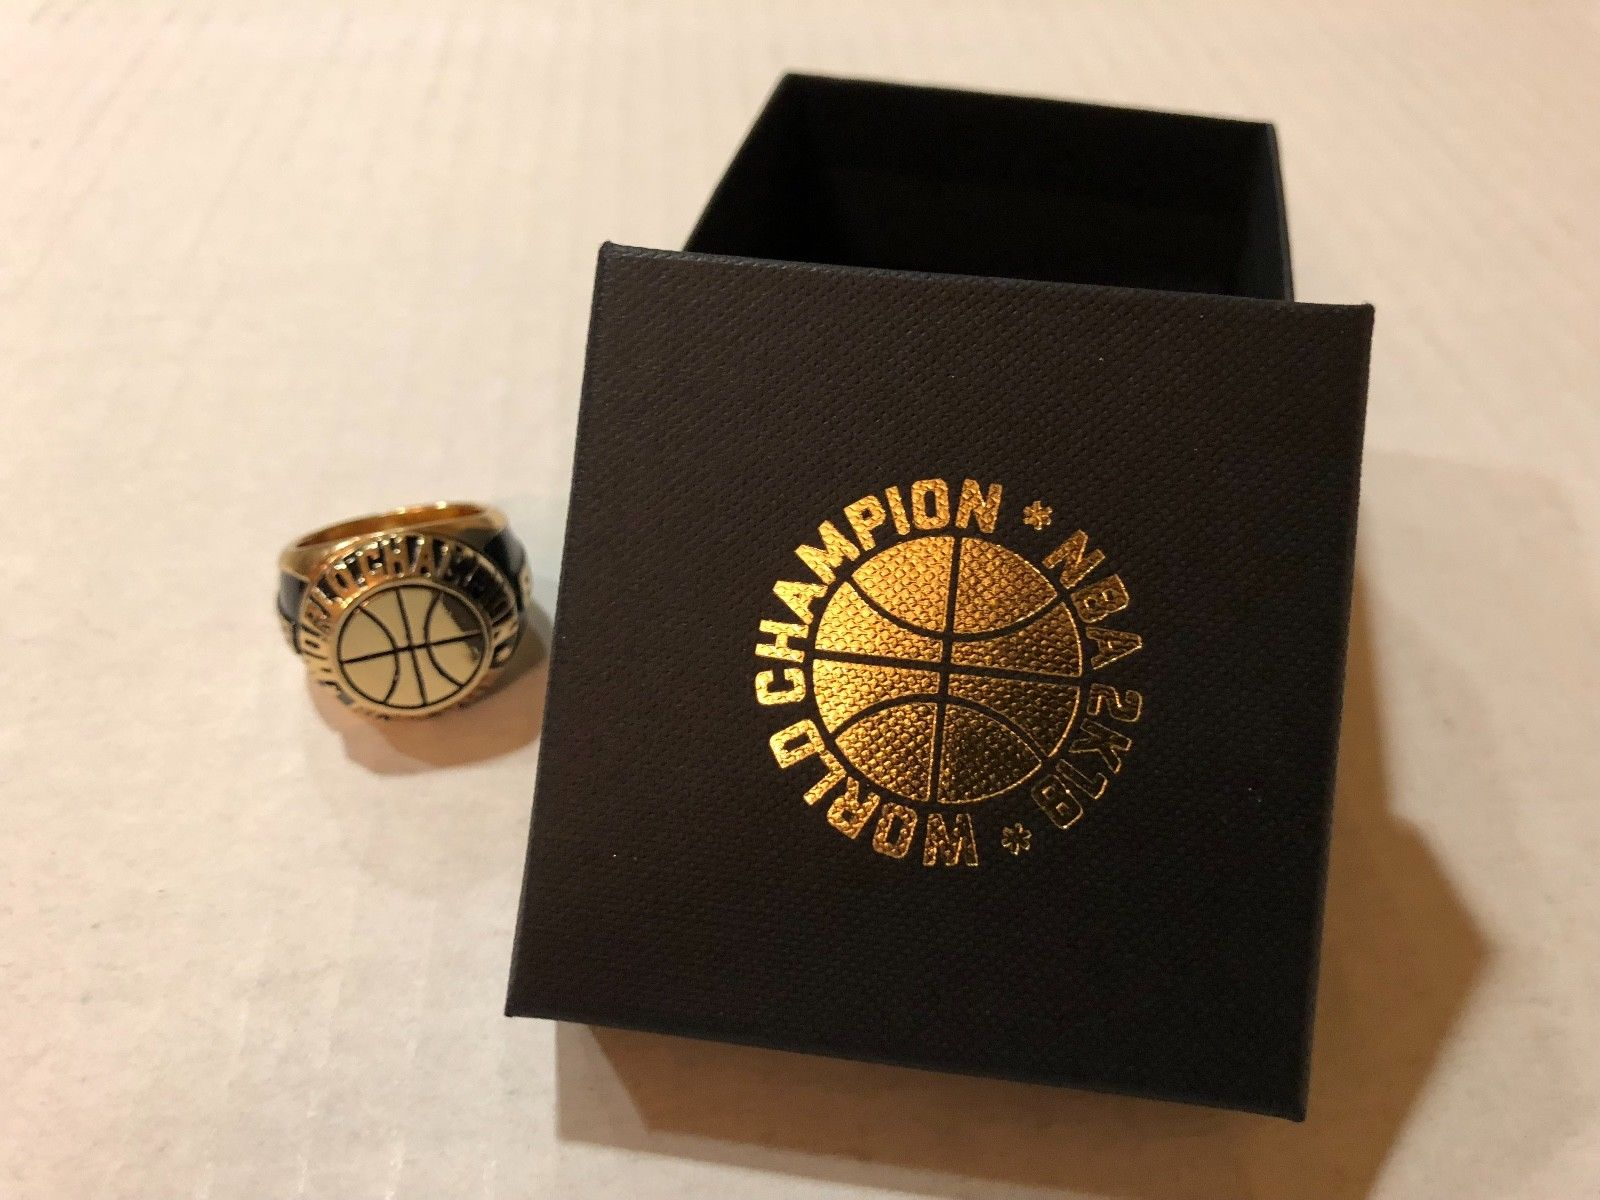 NBA 2K World Championship Ring Sport Game EA Electronic Arts PlayStation Xbox 2